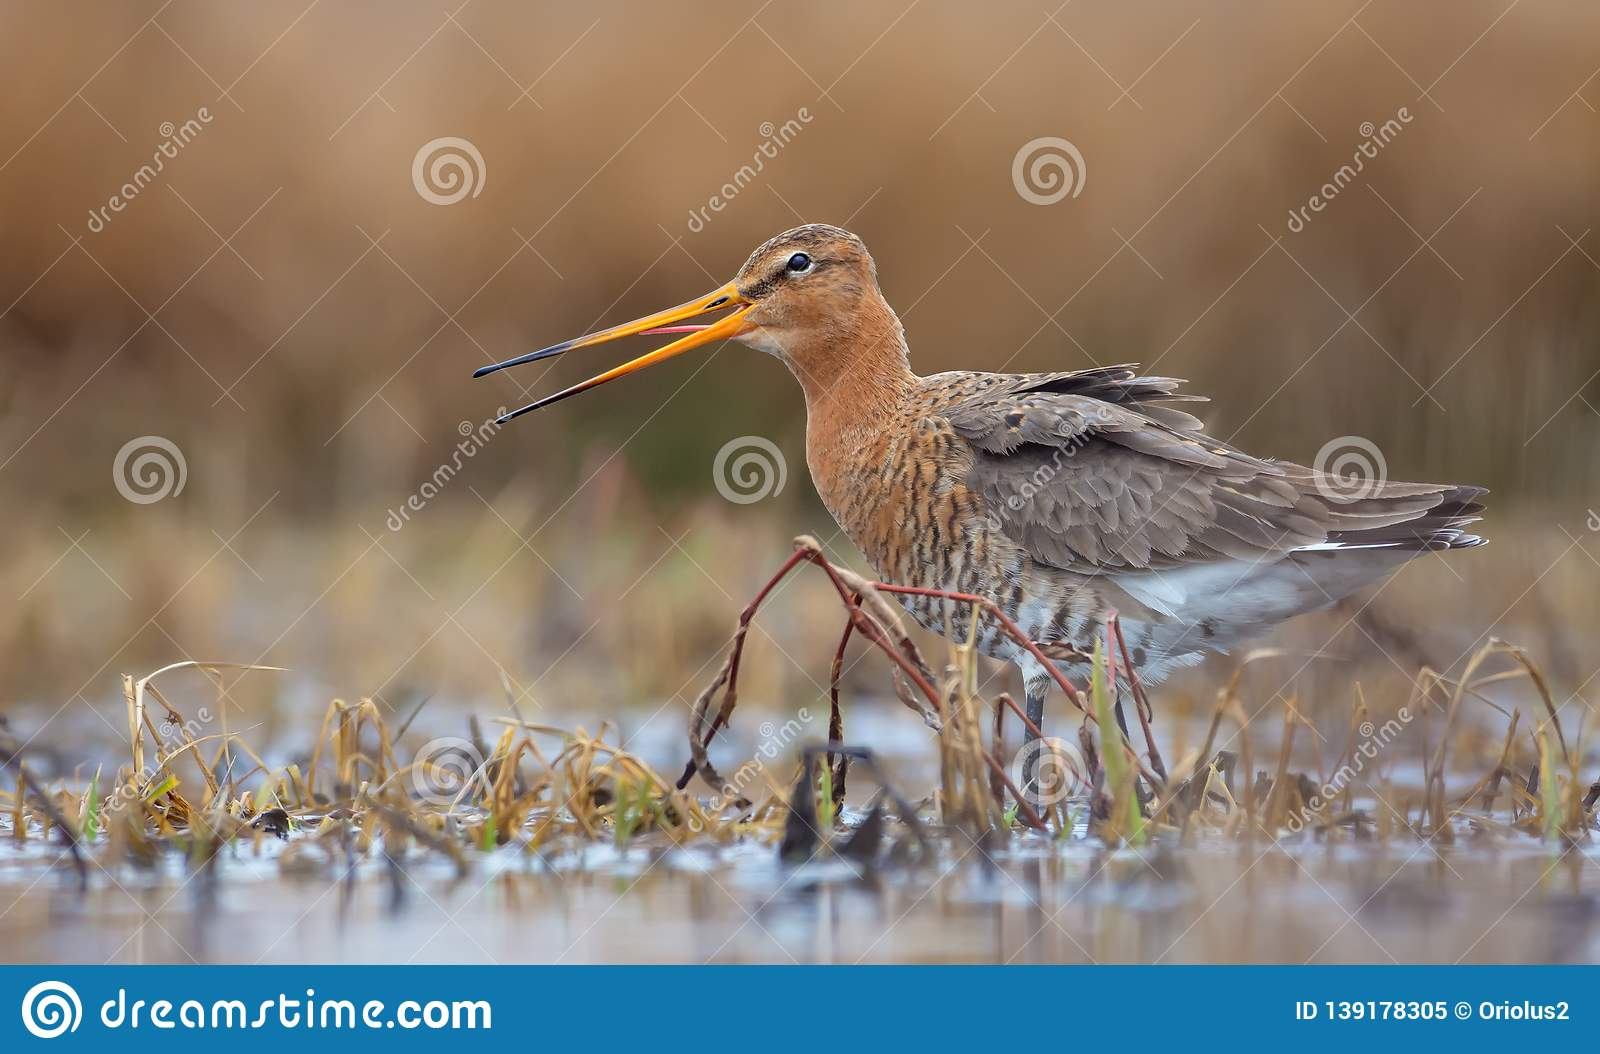 Black-tailed godwit feeds in shallow waters of small pool while calling or crying loudly